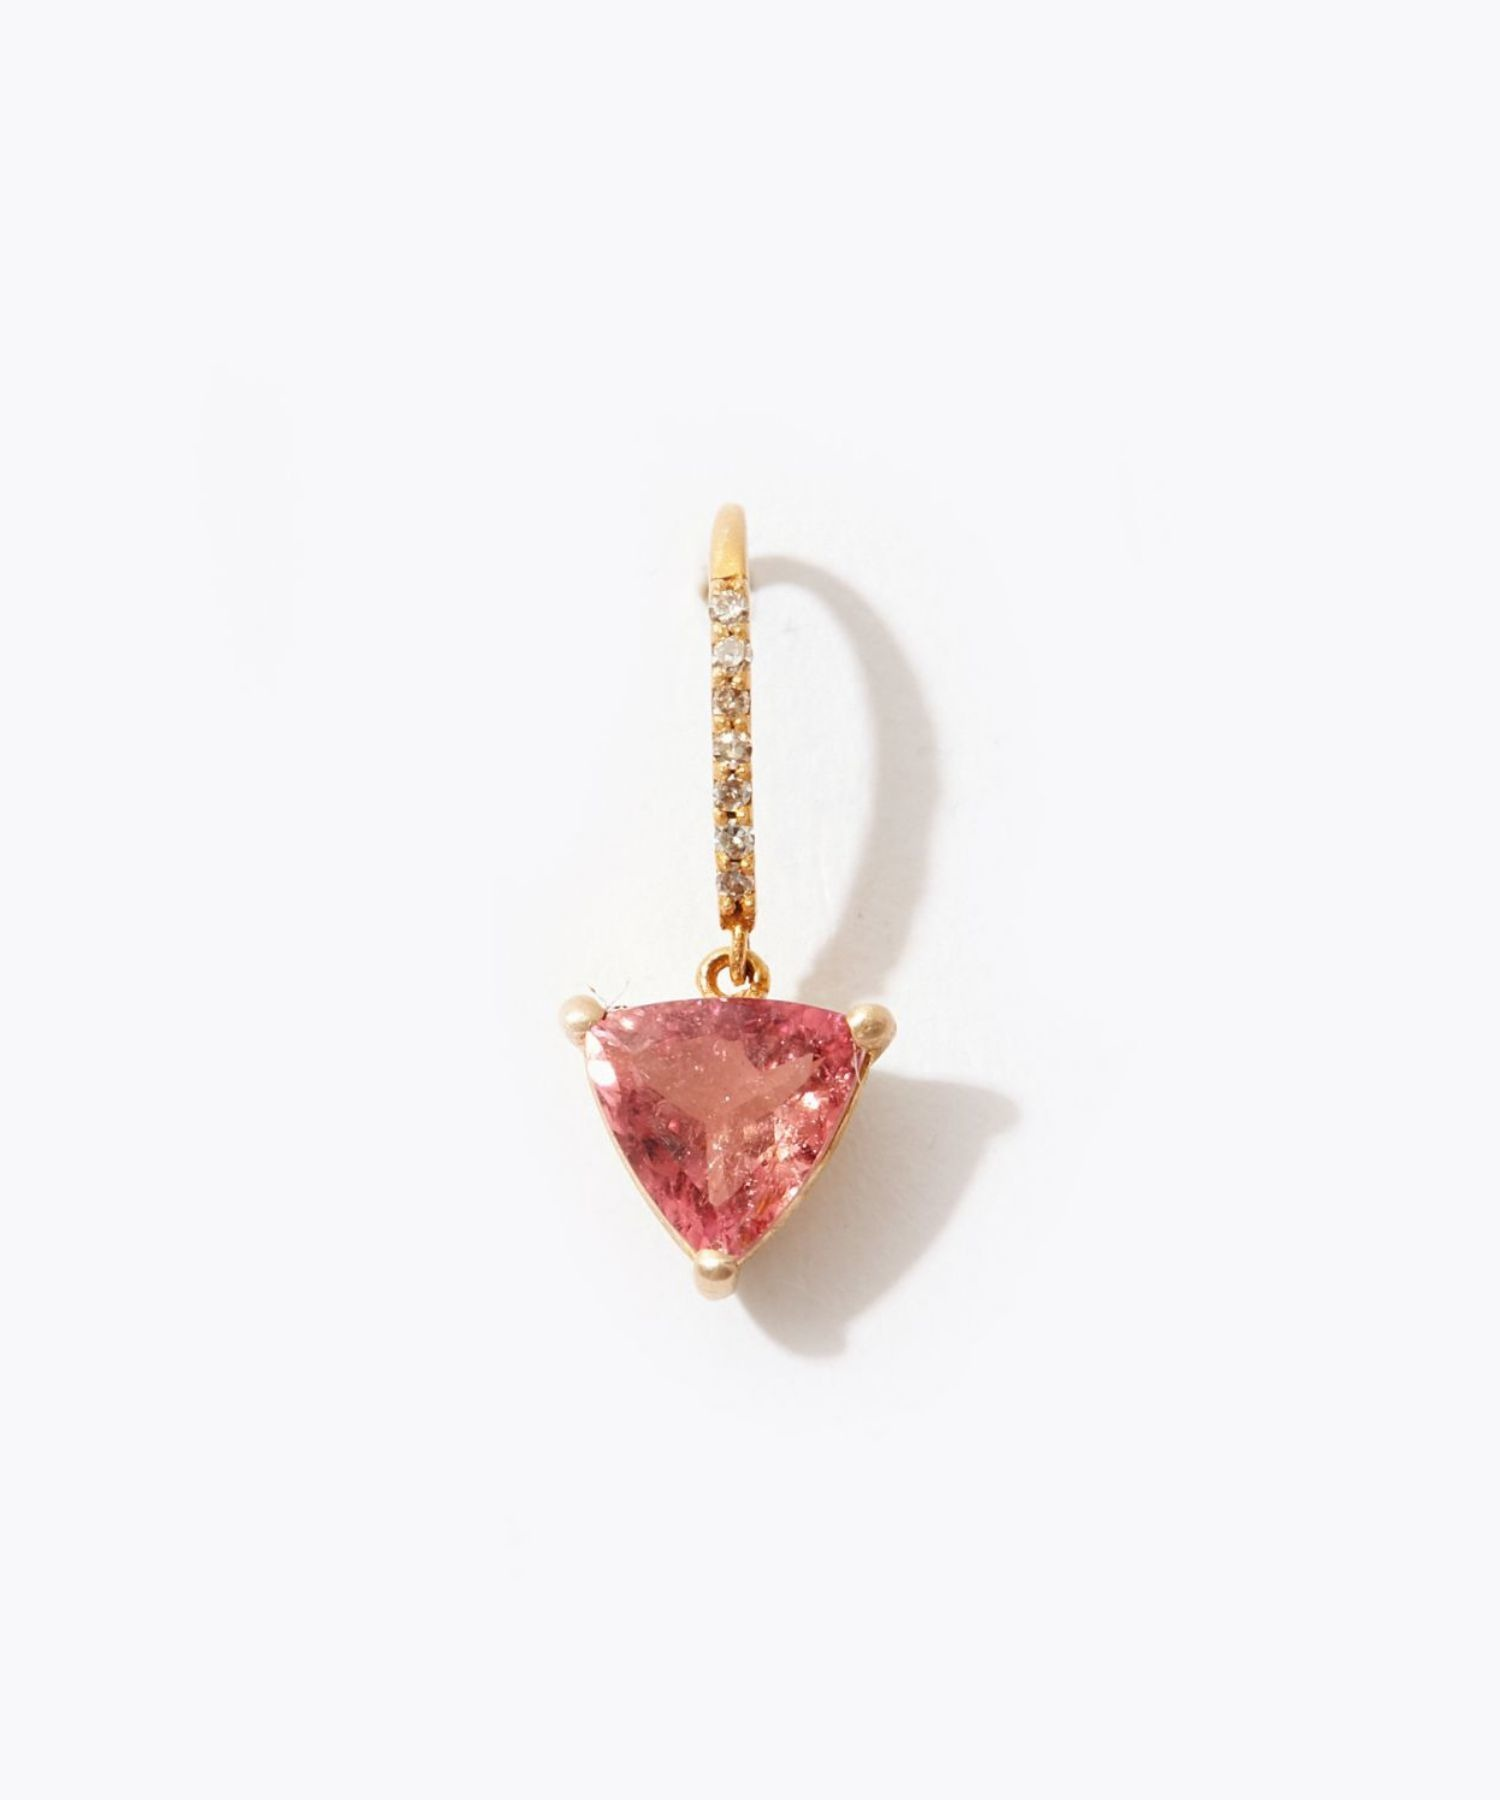 [eden] K10 triangle pink tourmaline pave diamond pierced earring